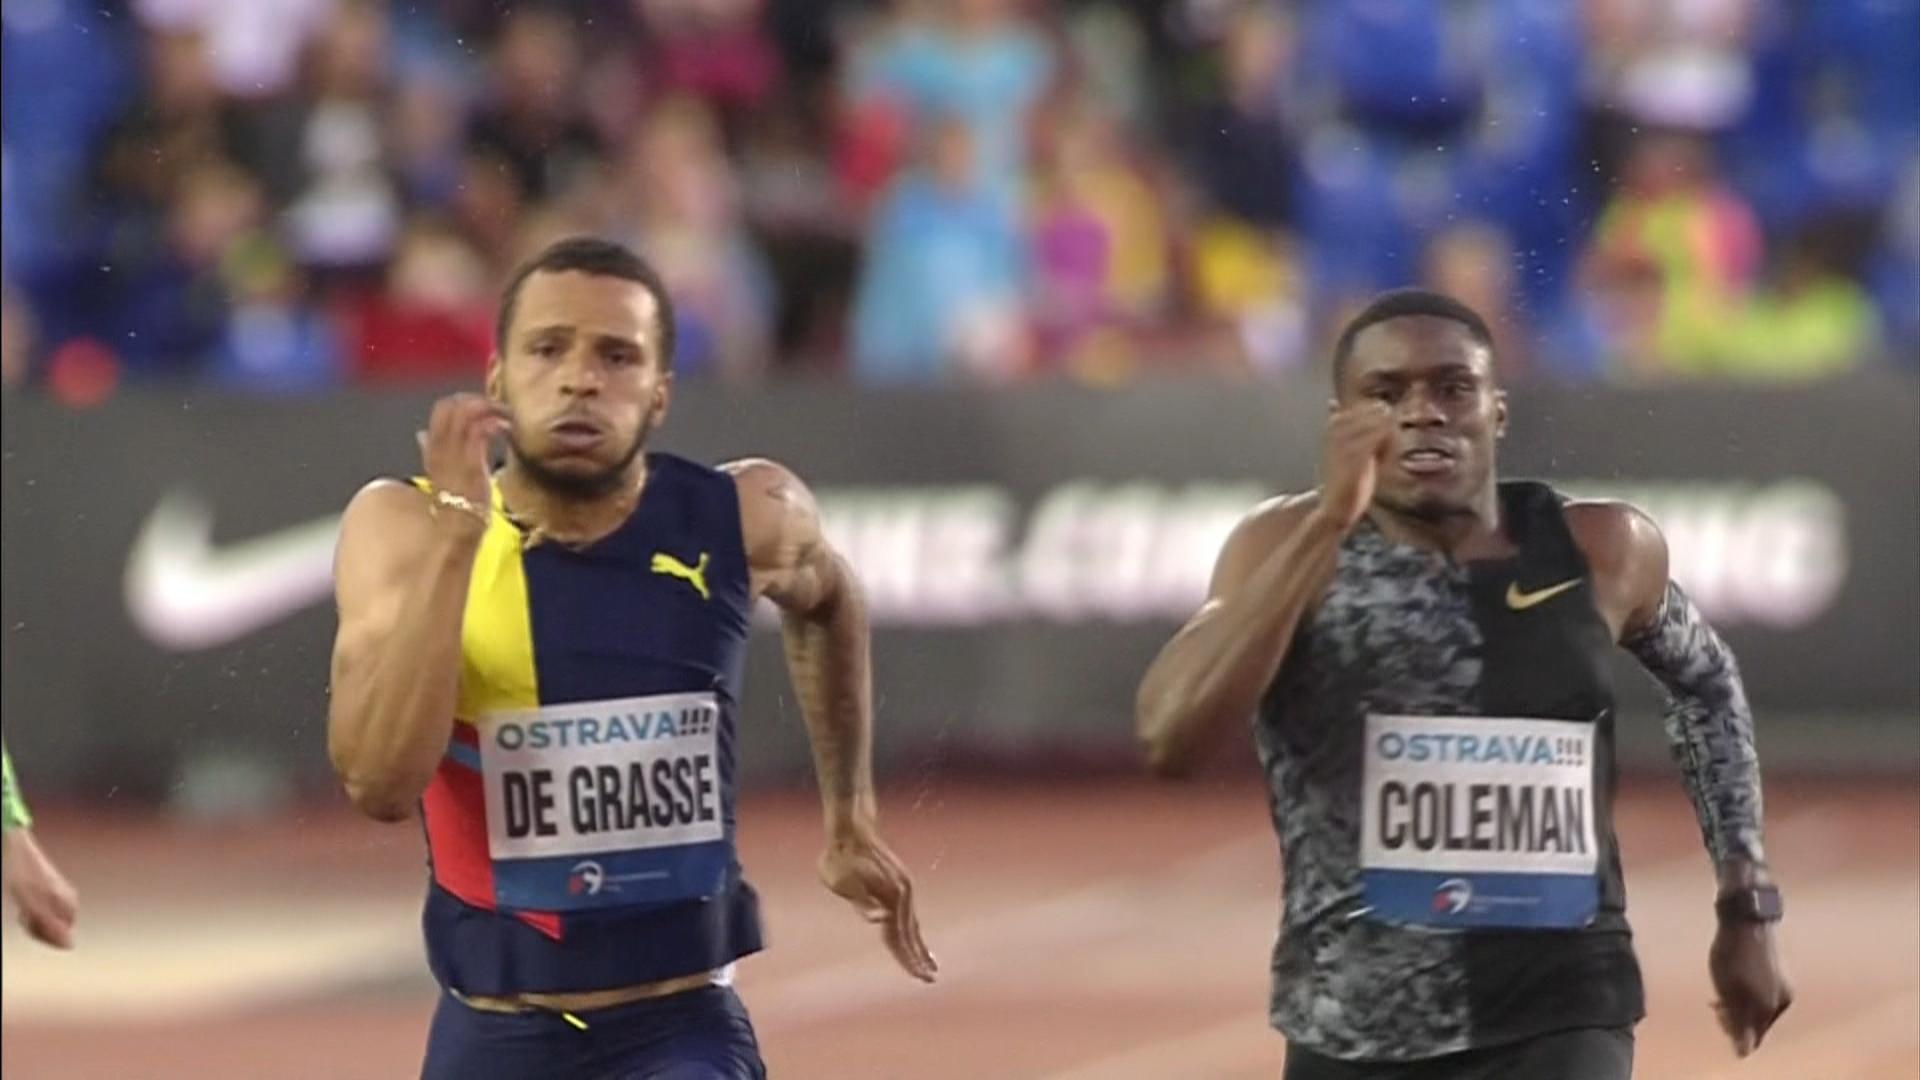 Andre De Grasse chases down Christian Coleman, wins 200m in Ostrava